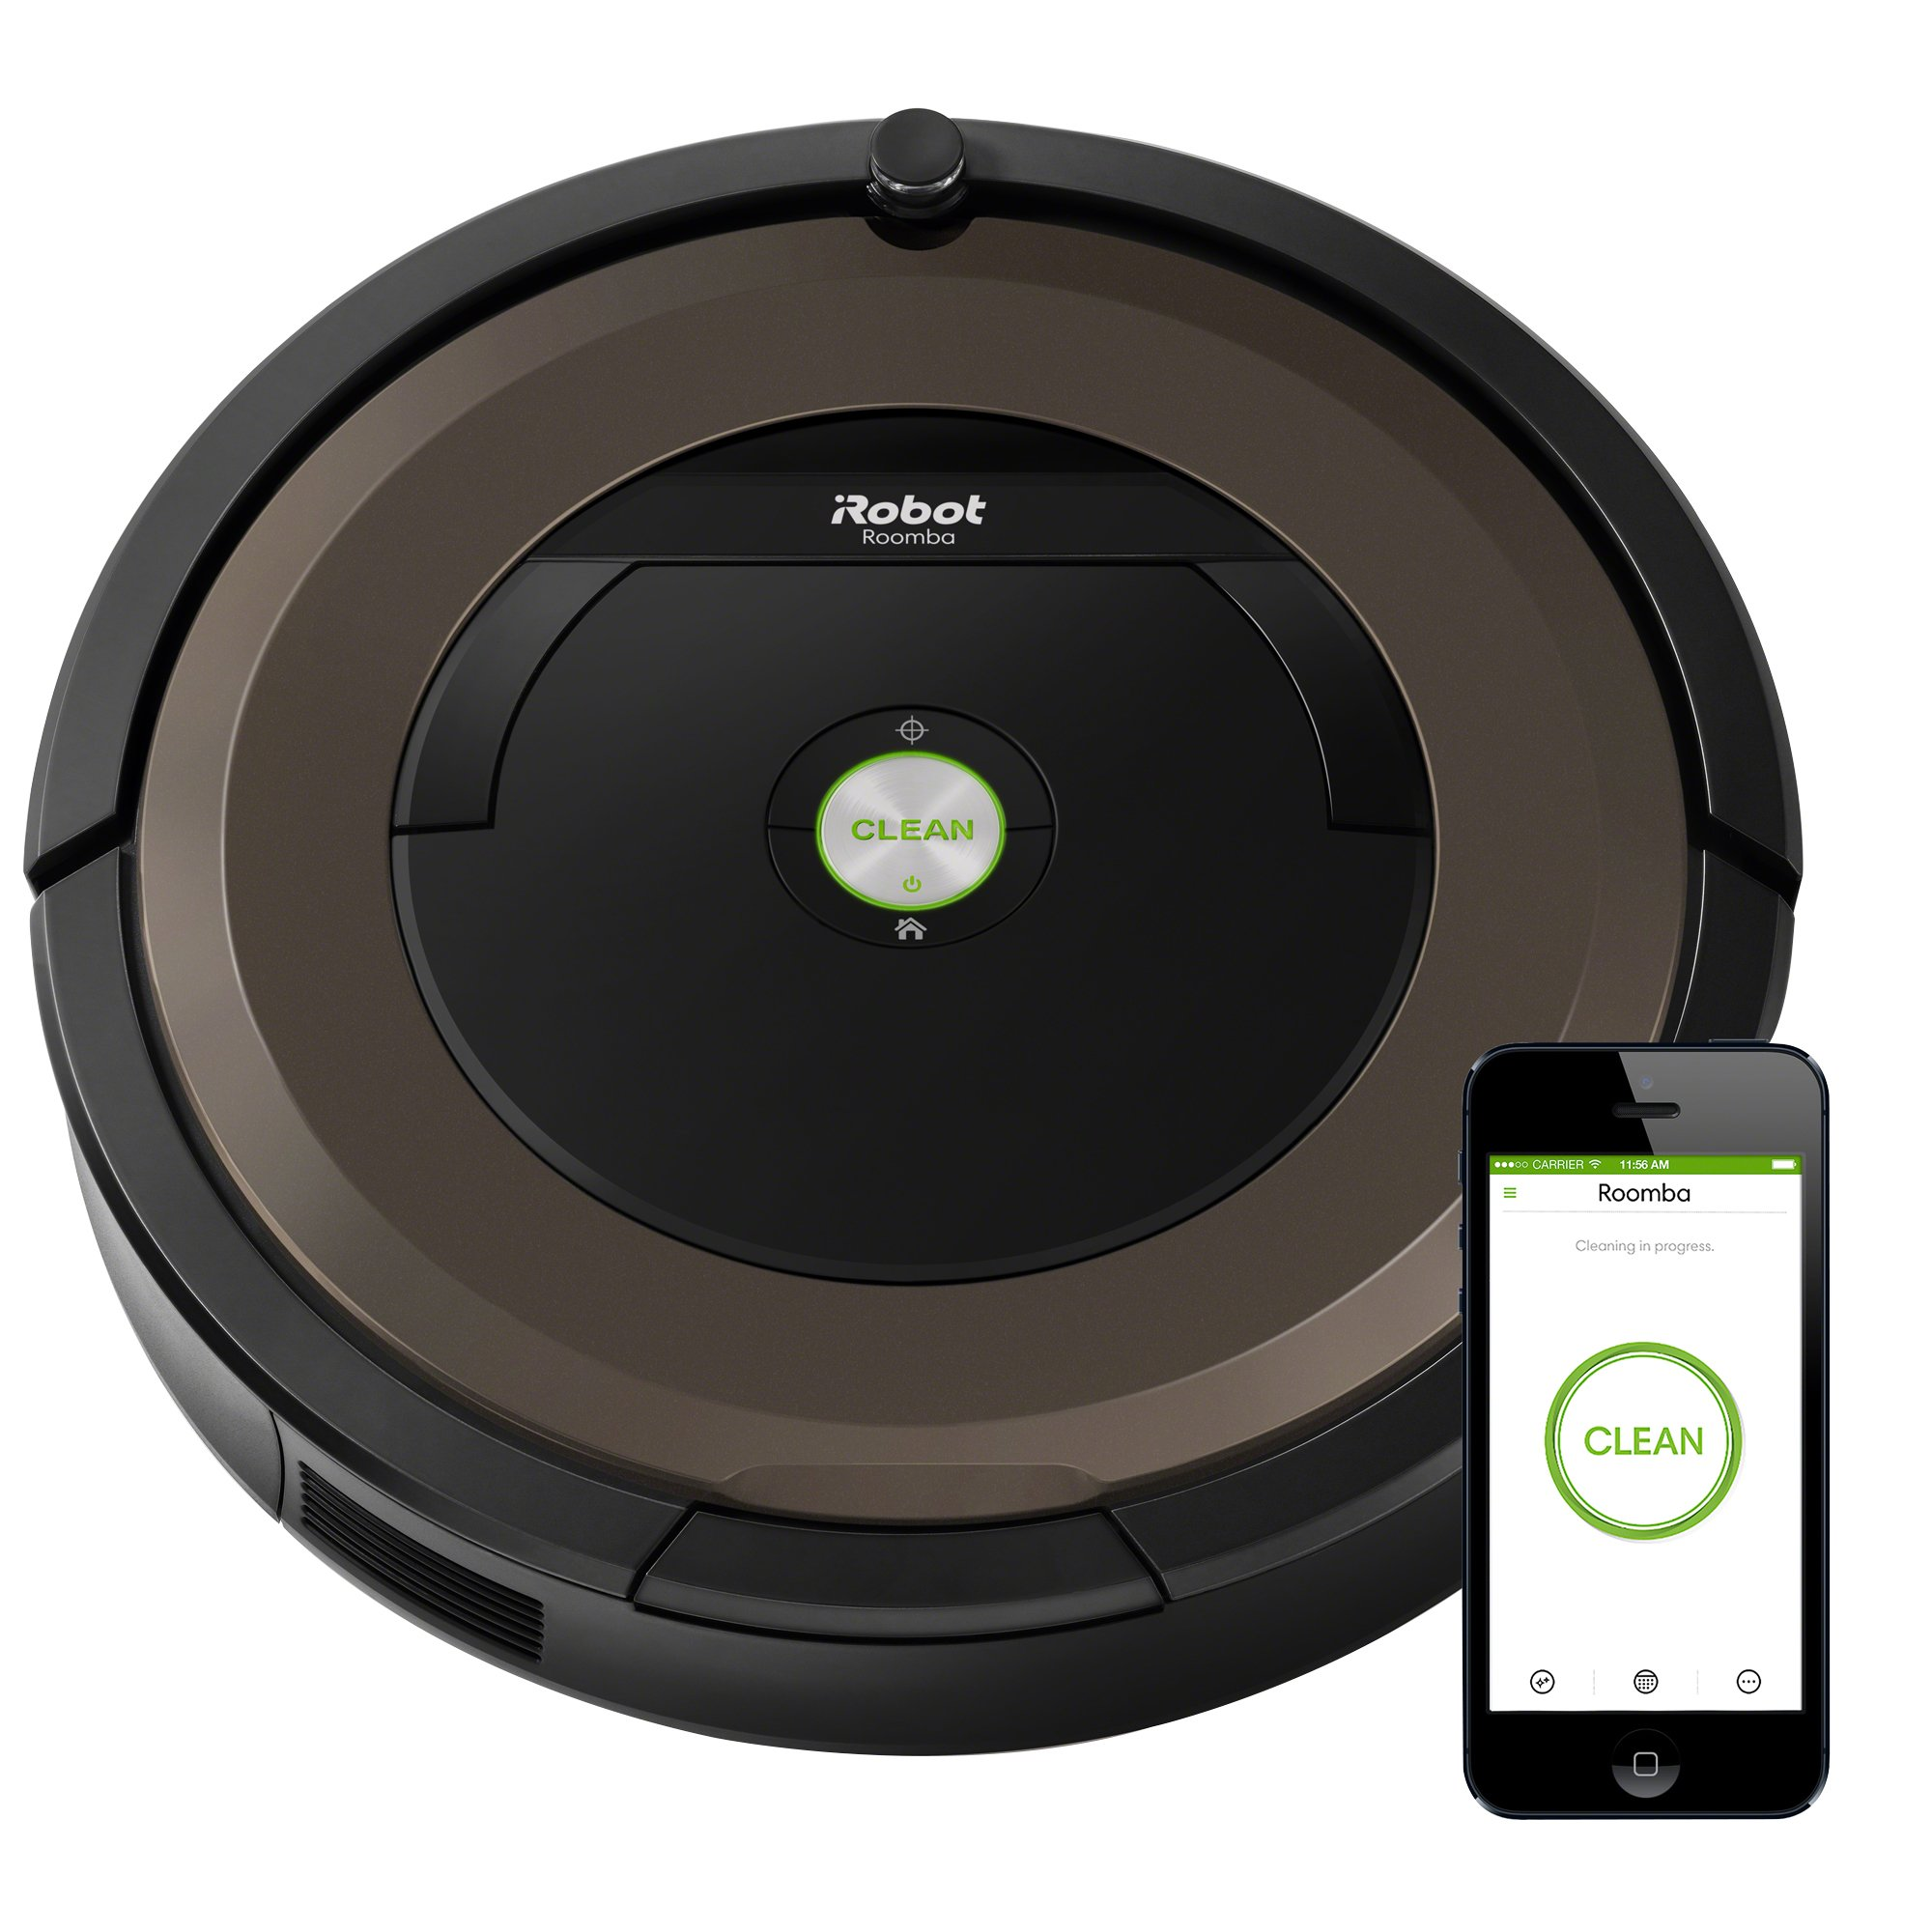 iRobot Roomba 890 Robot Vacuum with Wi-Fi Connectivity by iRobot